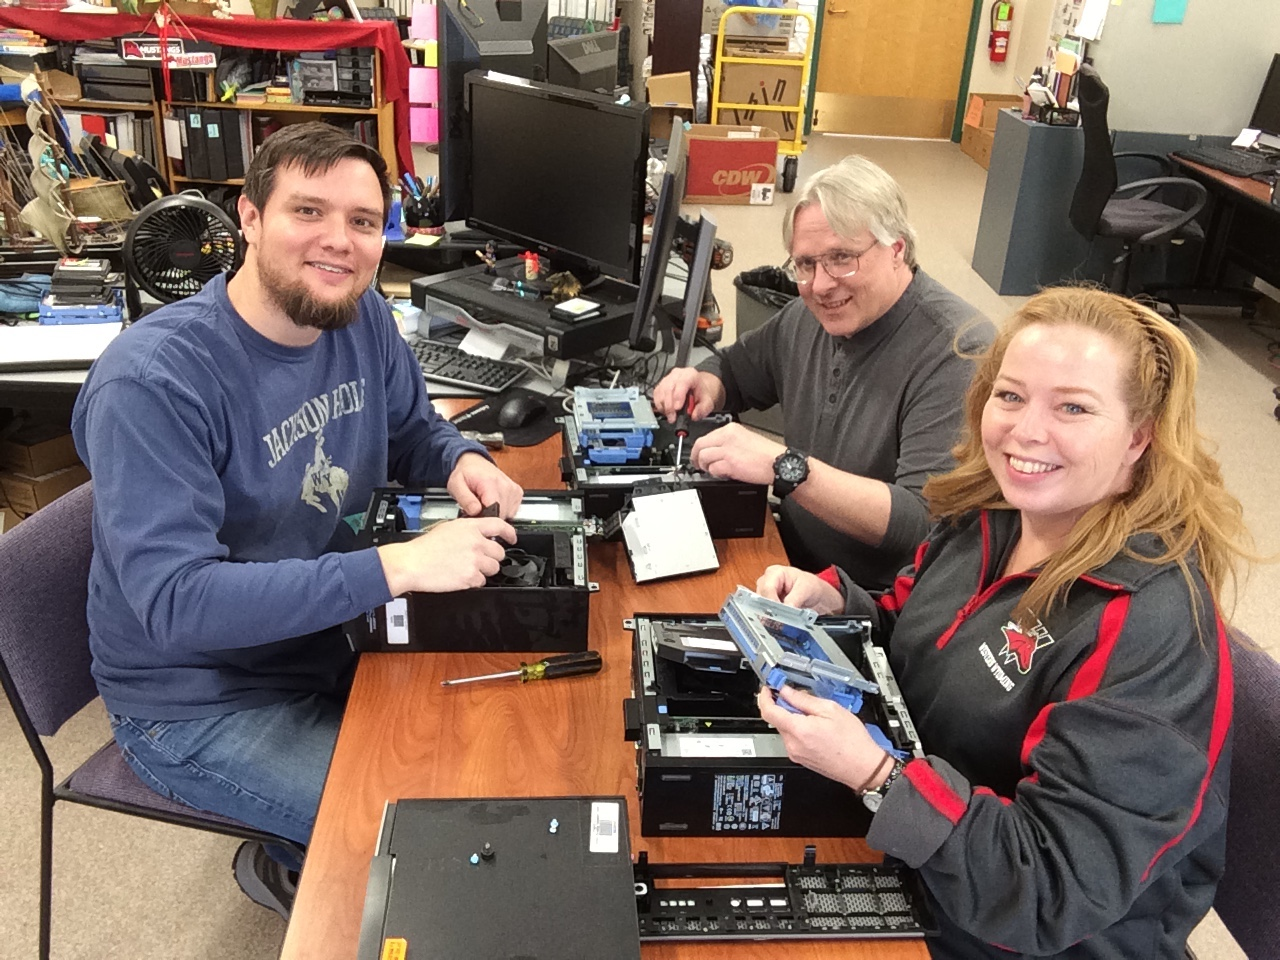 Western's IT Department work together to build computers to distribute to students in need.